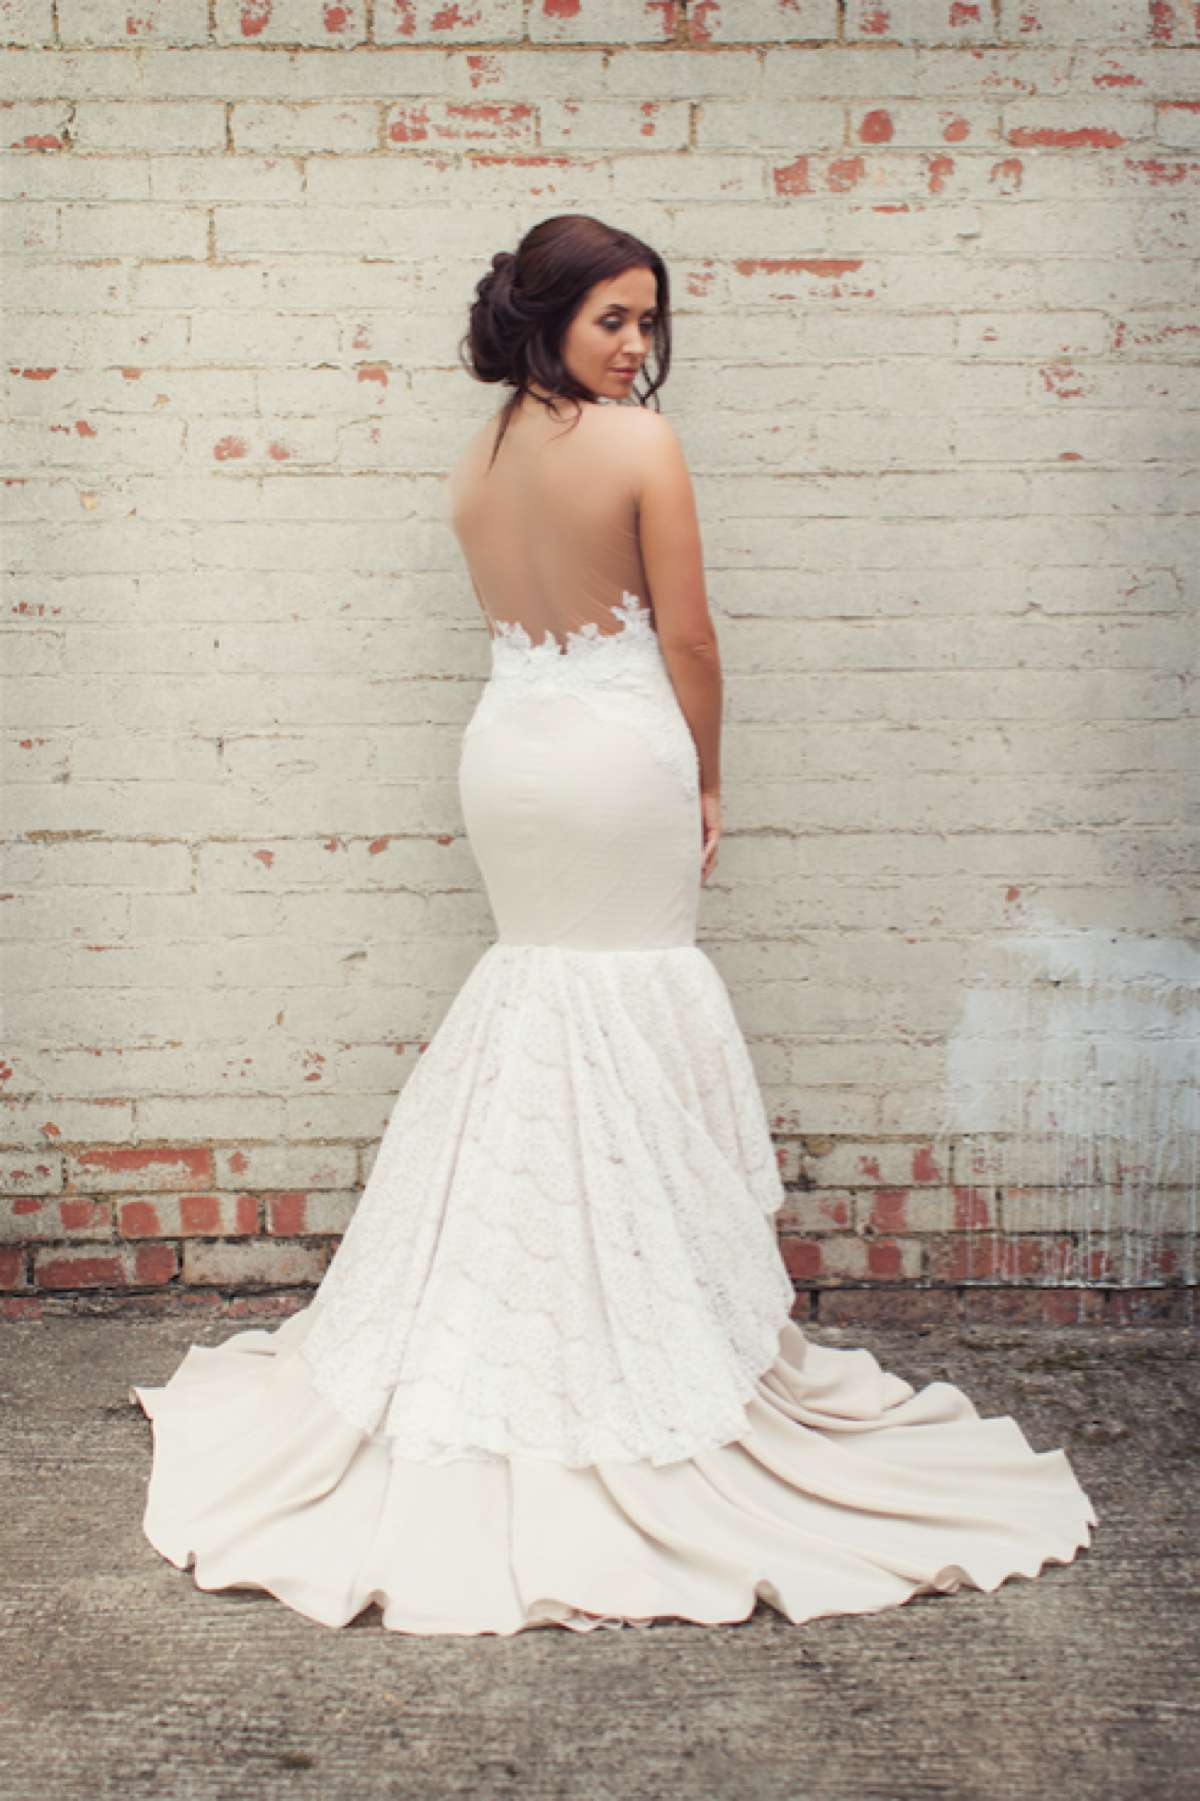 Bespoke bridal gowns from Emily Victoria White - Love Our Wedding